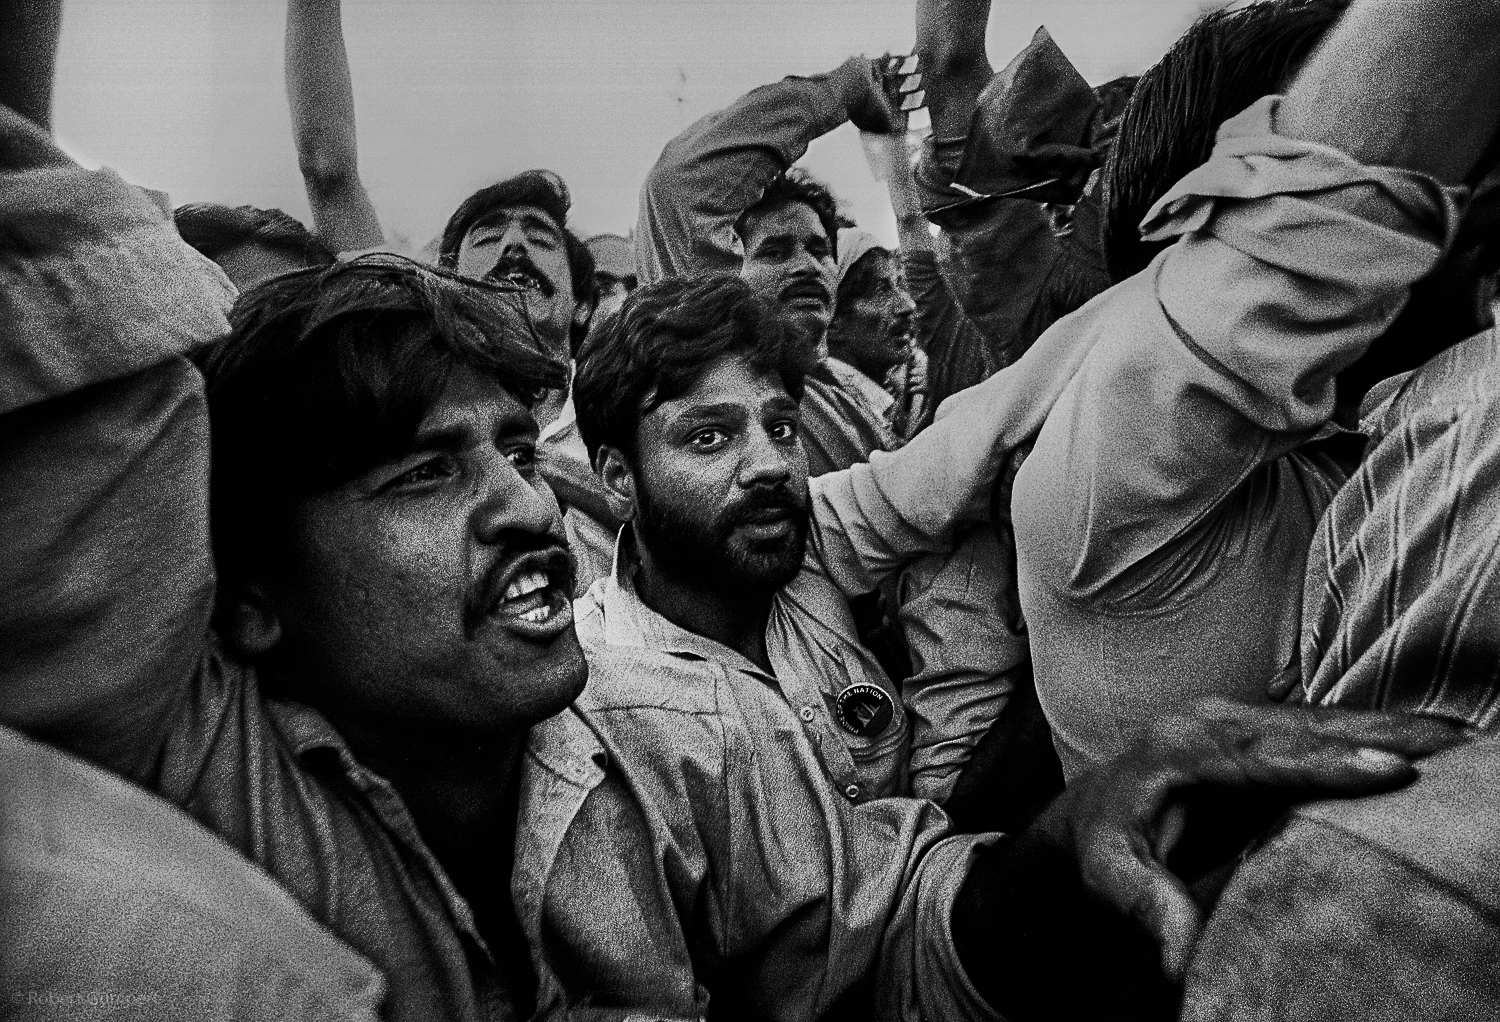 Lahore, Pakistan 1990:  Supporters of a candidate greet him as he arrives in a car carvan.